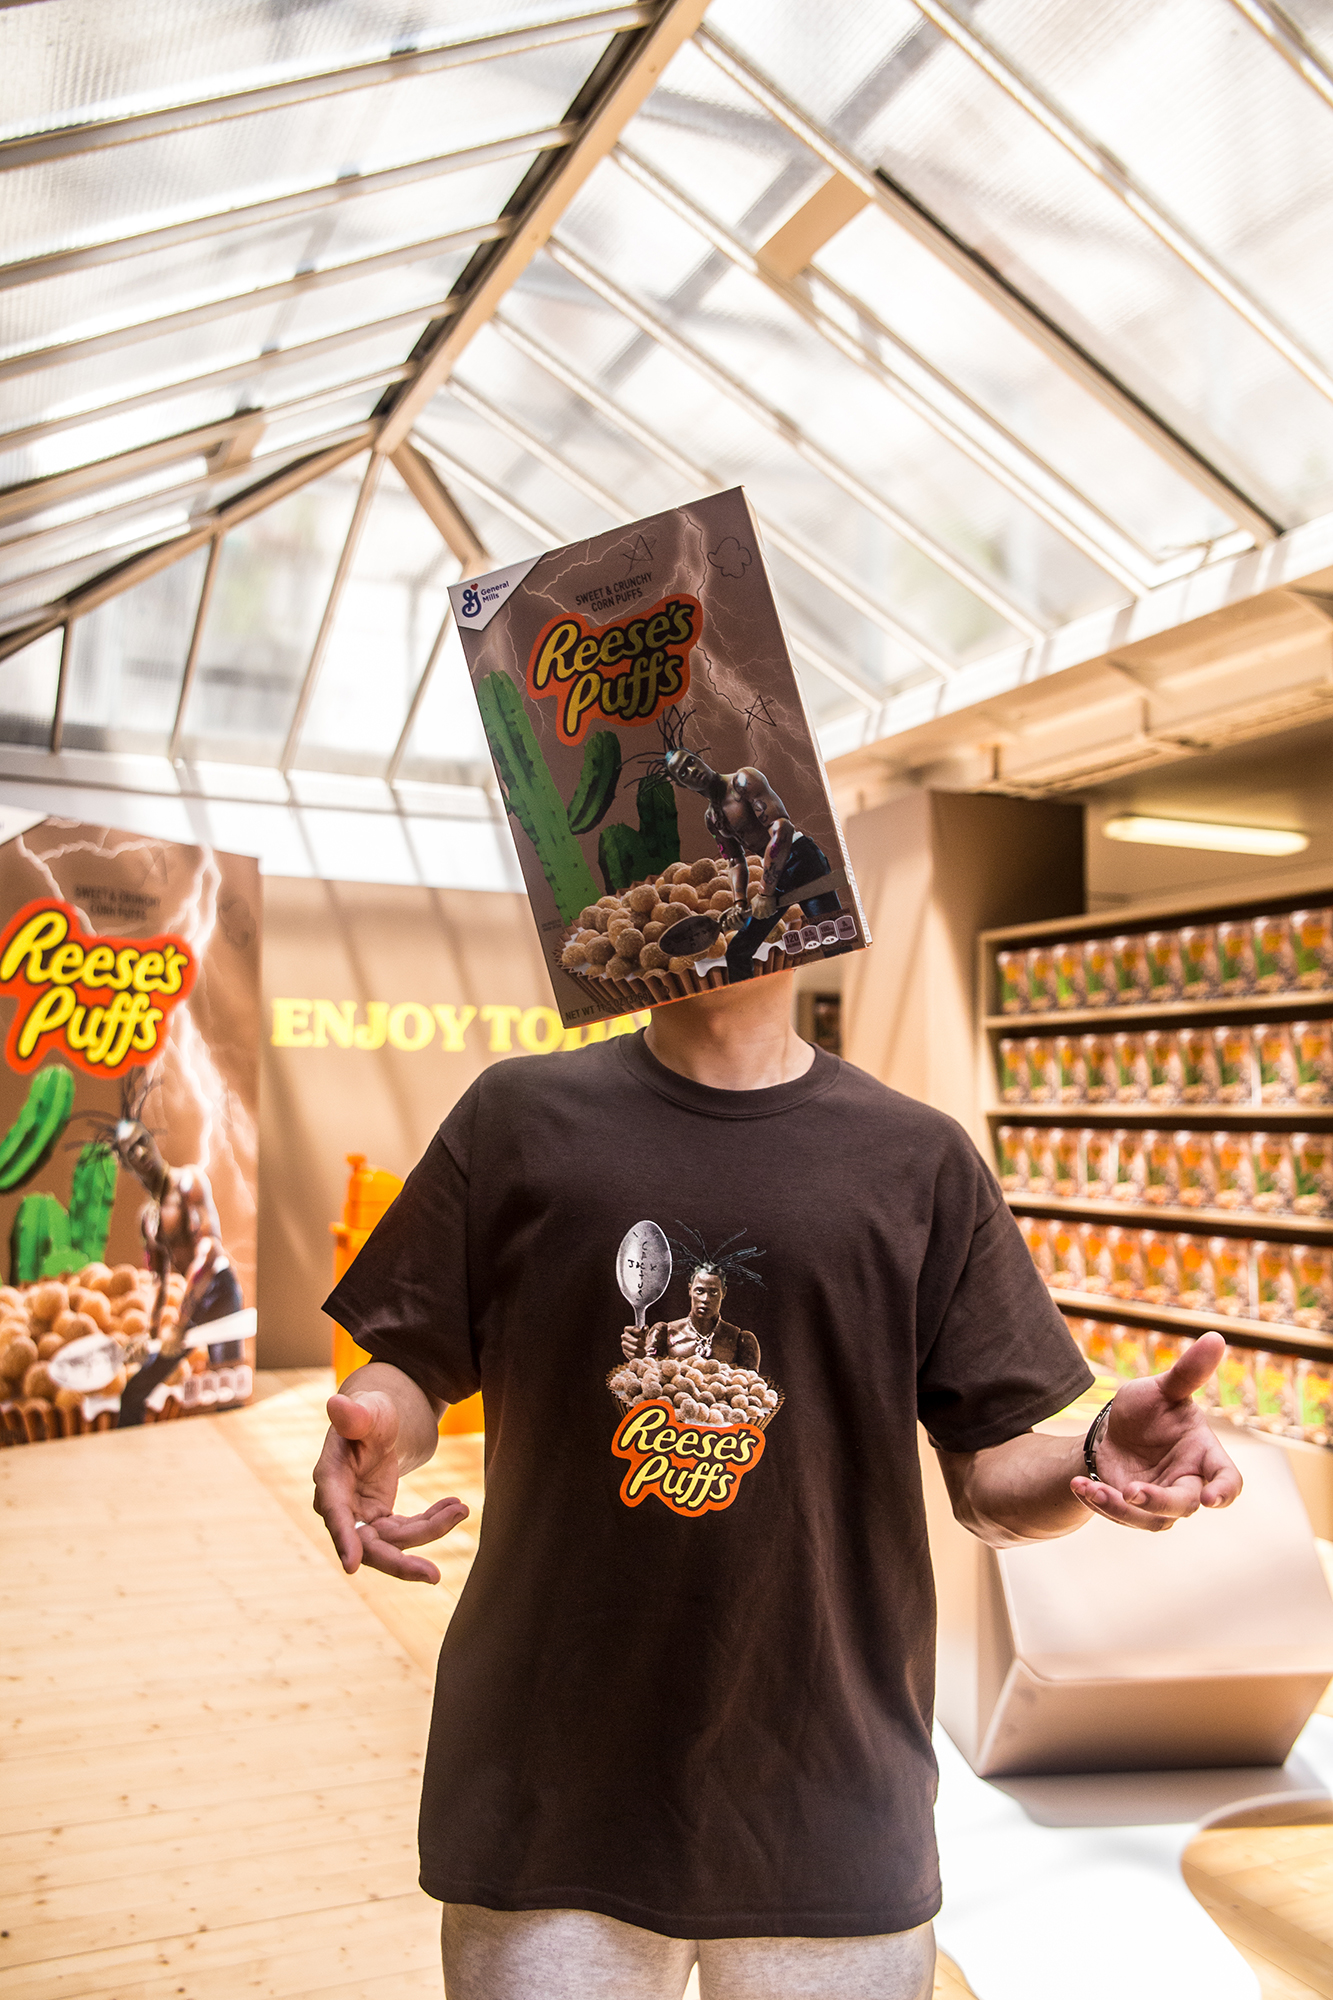 cbcb0f0dc788 Travis Scott's Reese's Puffs Collab Sold Out in 30 Seconds: Photos